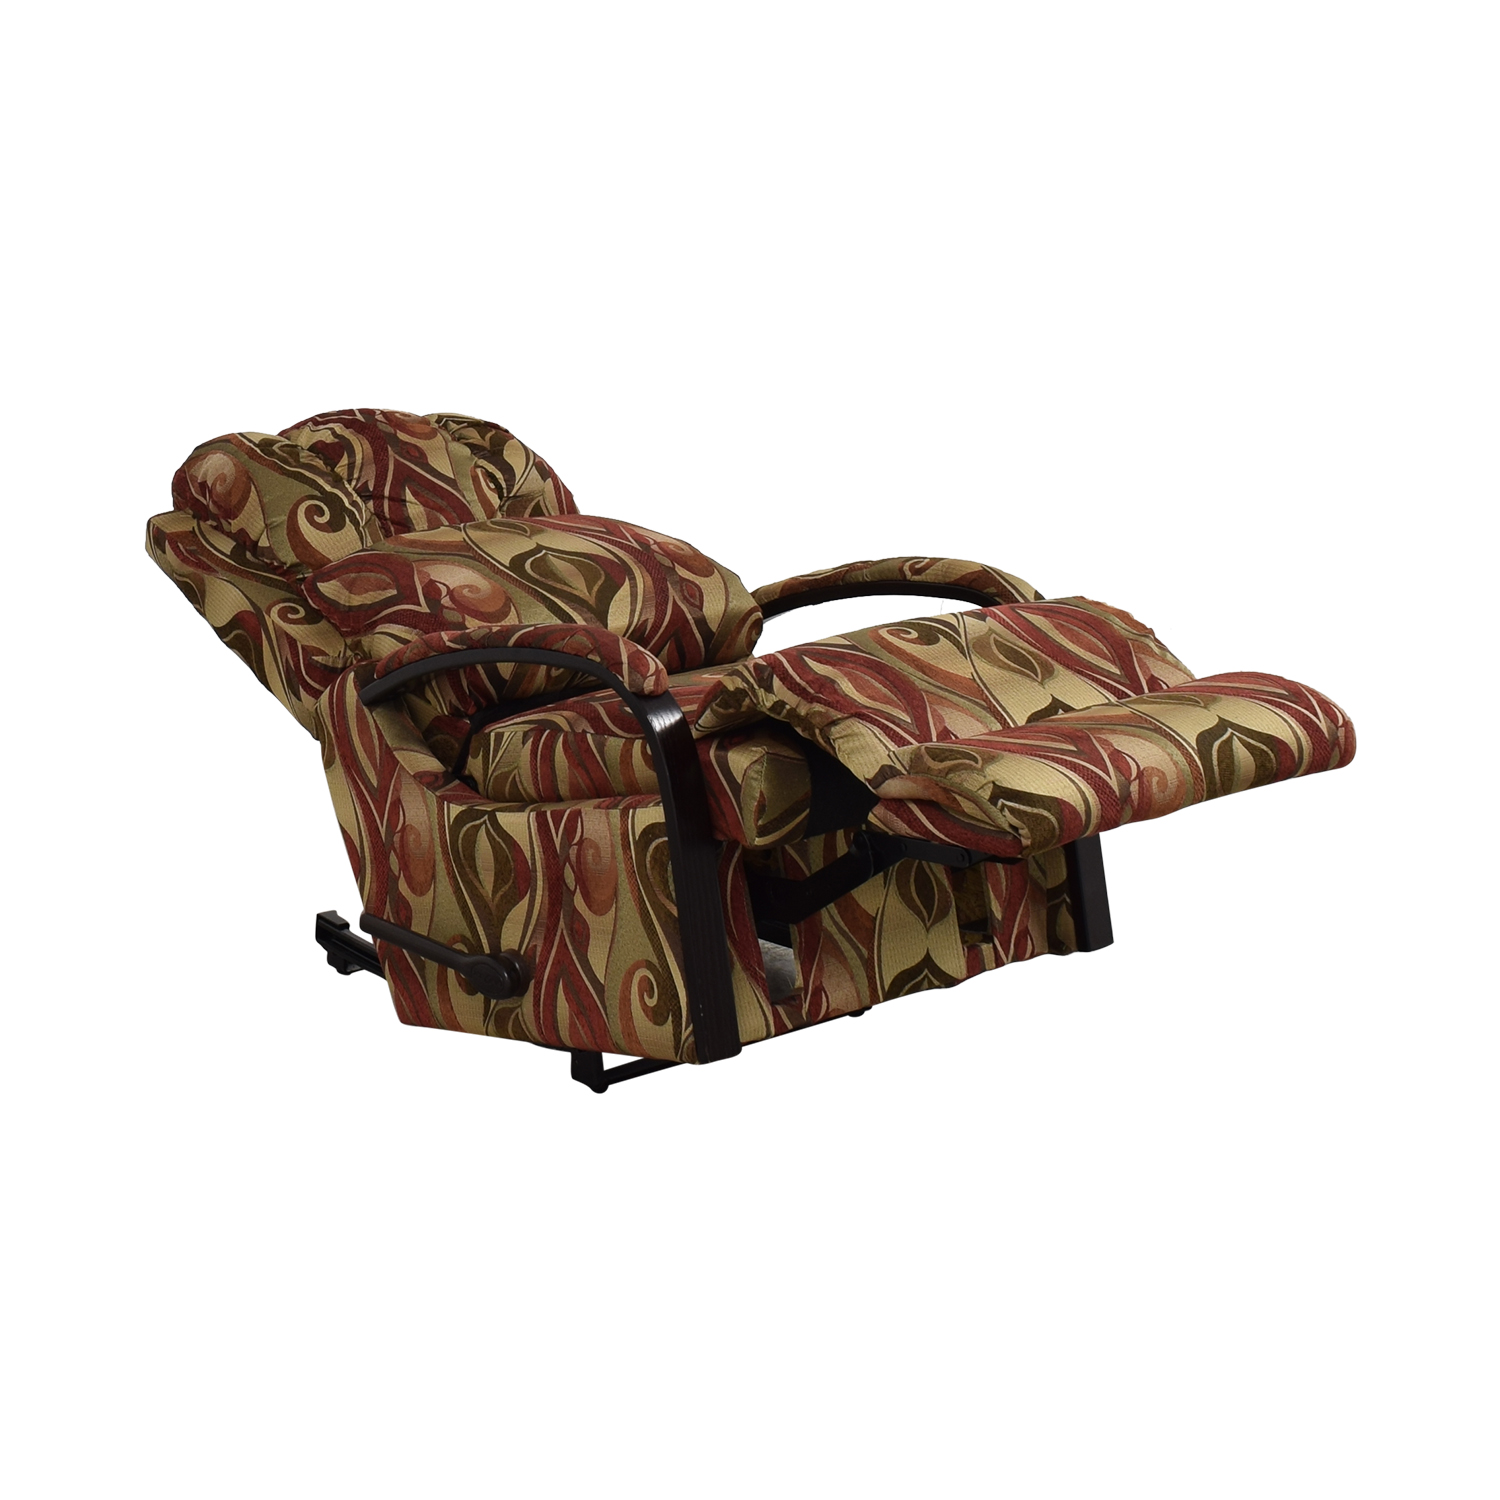 La-Z-Boy La-Z-Boy Harbor Town Reclina-Way Recliner pa